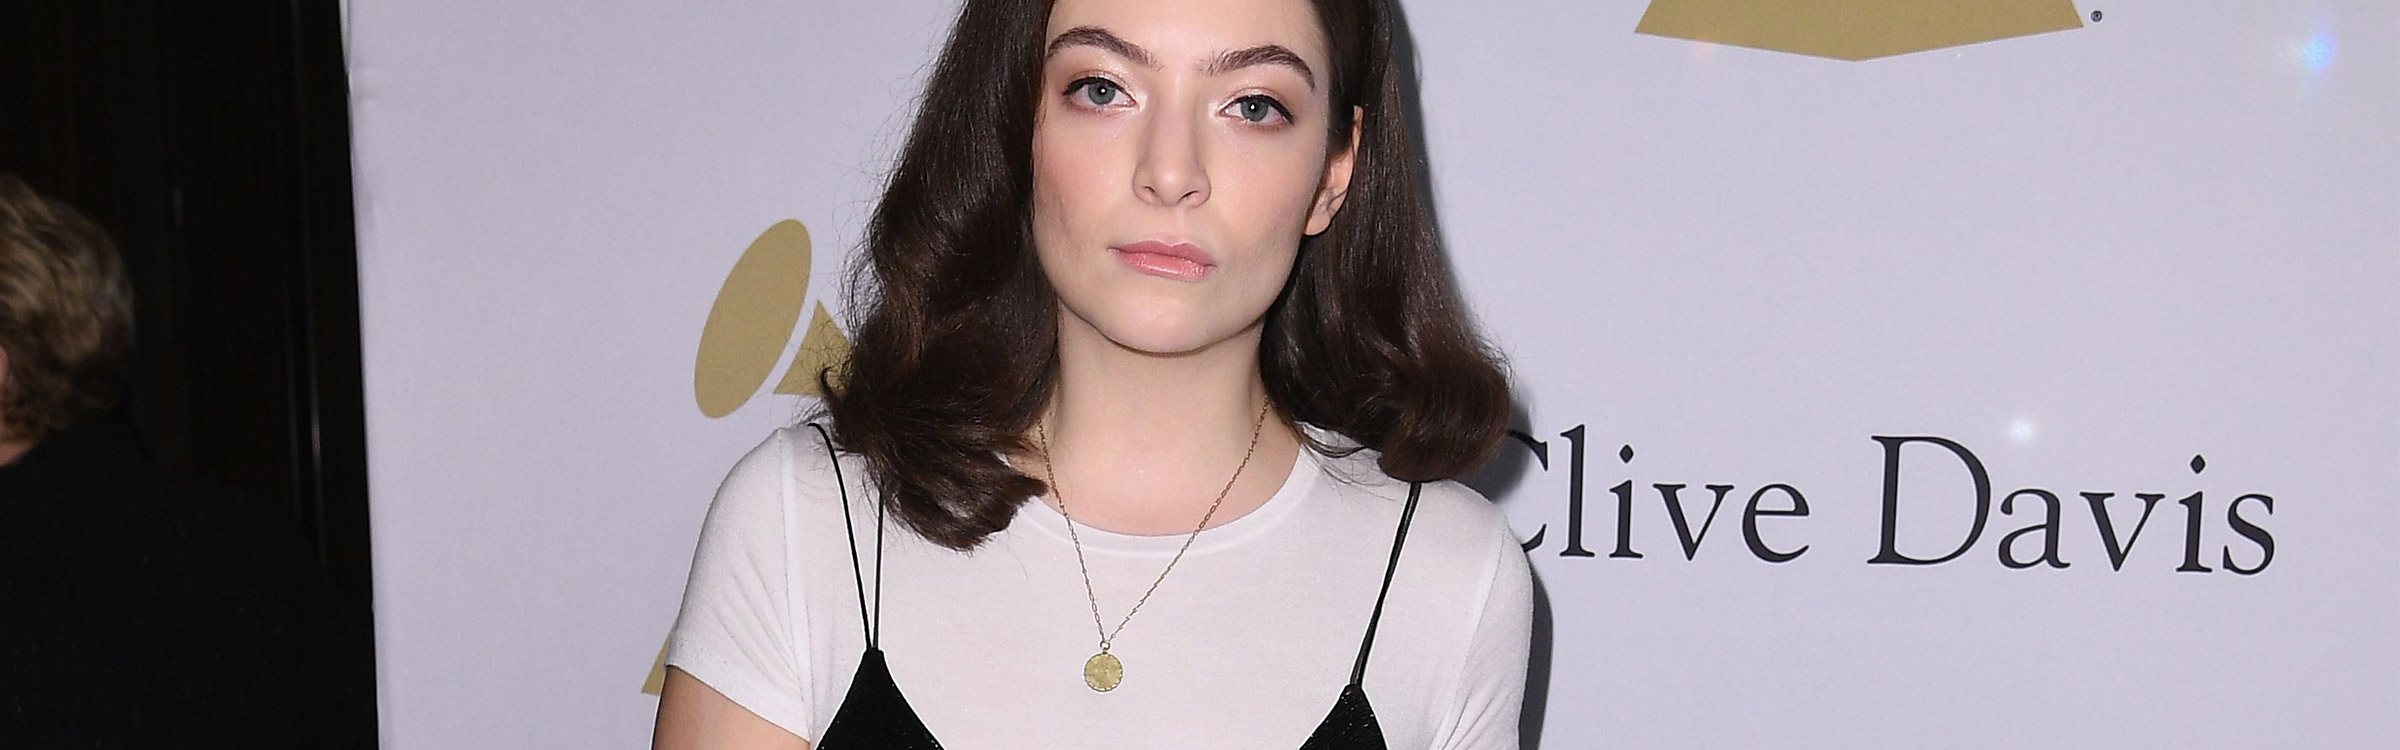 Lorde headerr